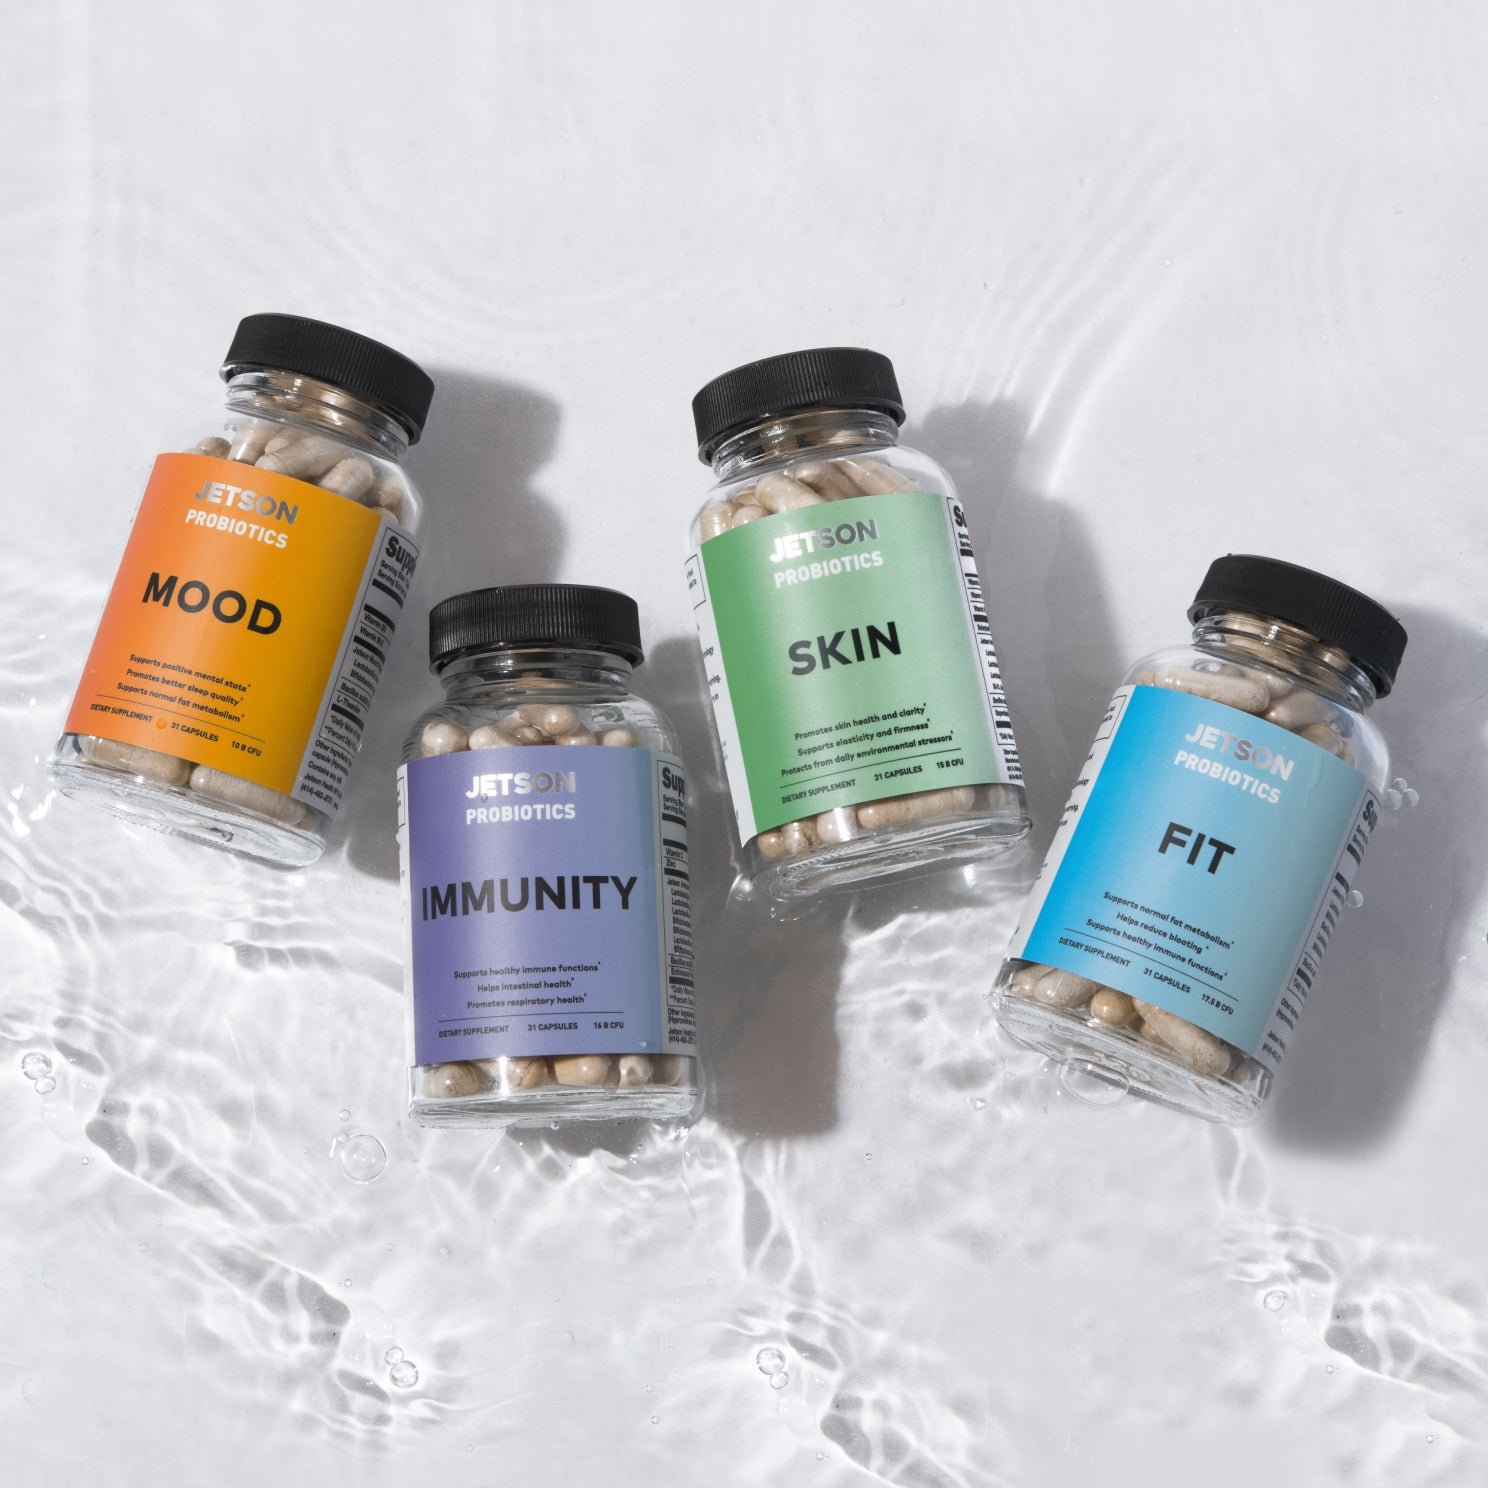 Our seasonal subscription rotates multi-strain formulations every 3 months, so your gut is as healthy as it should be year round. Our strains are chosen for common needs throughout the year, like strengthened immunity for winter and metabolism for summer.